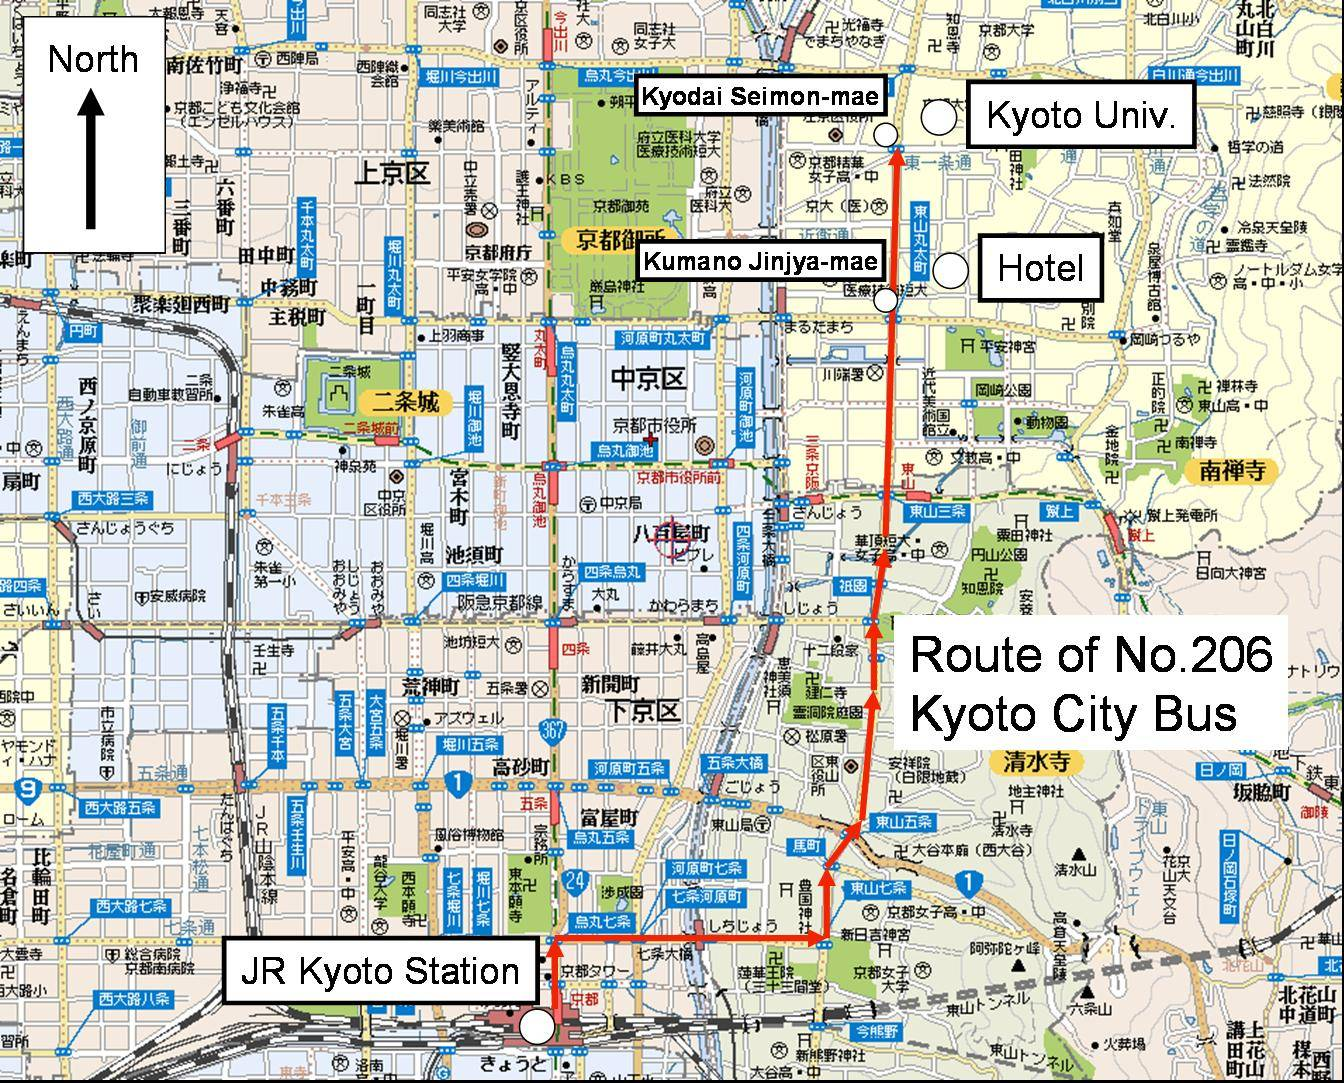 Large Kyoto Maps for Free Download and Print HighResolution and